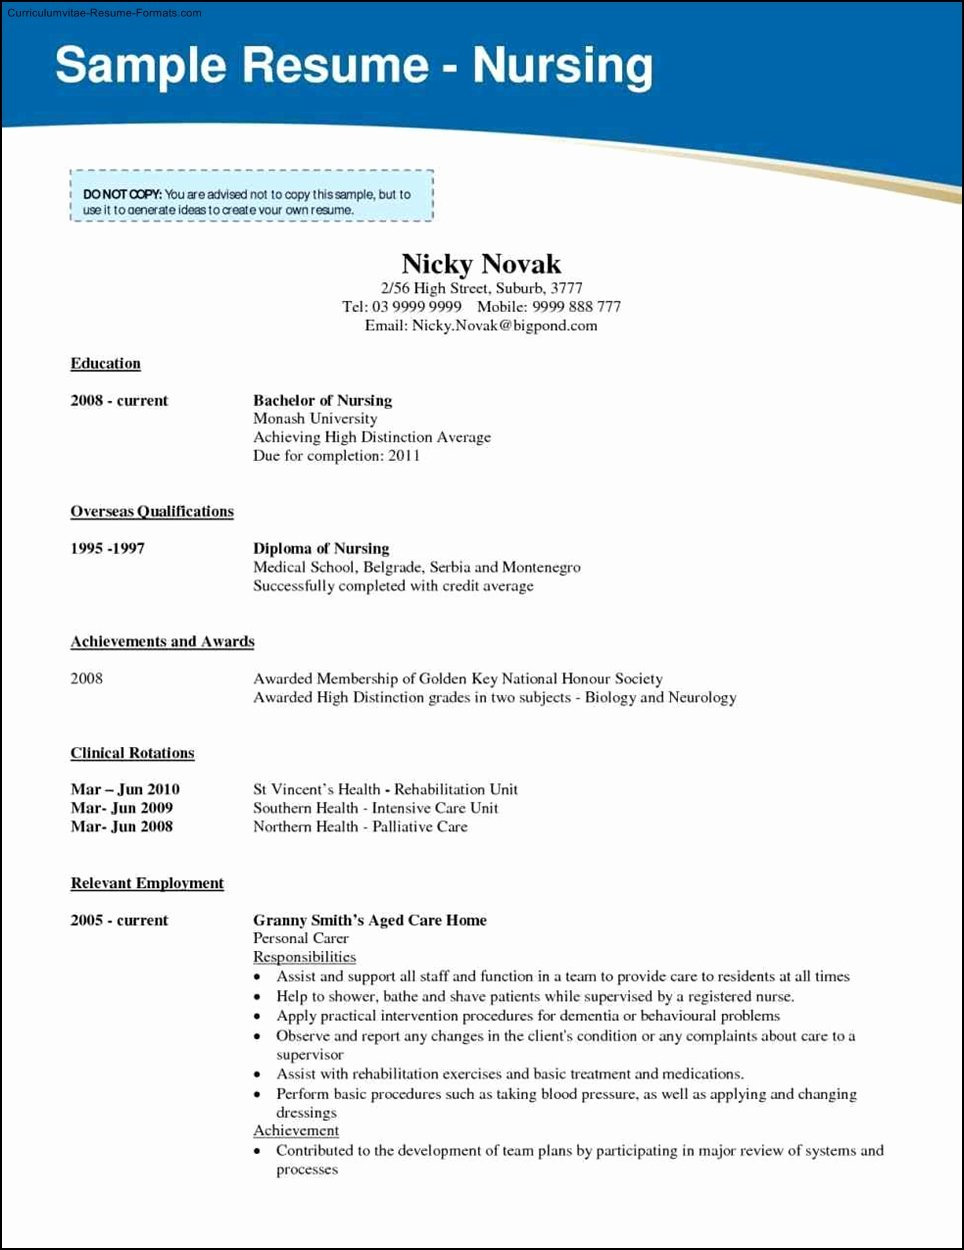 Nursing School Resume Template Free Samples Examples